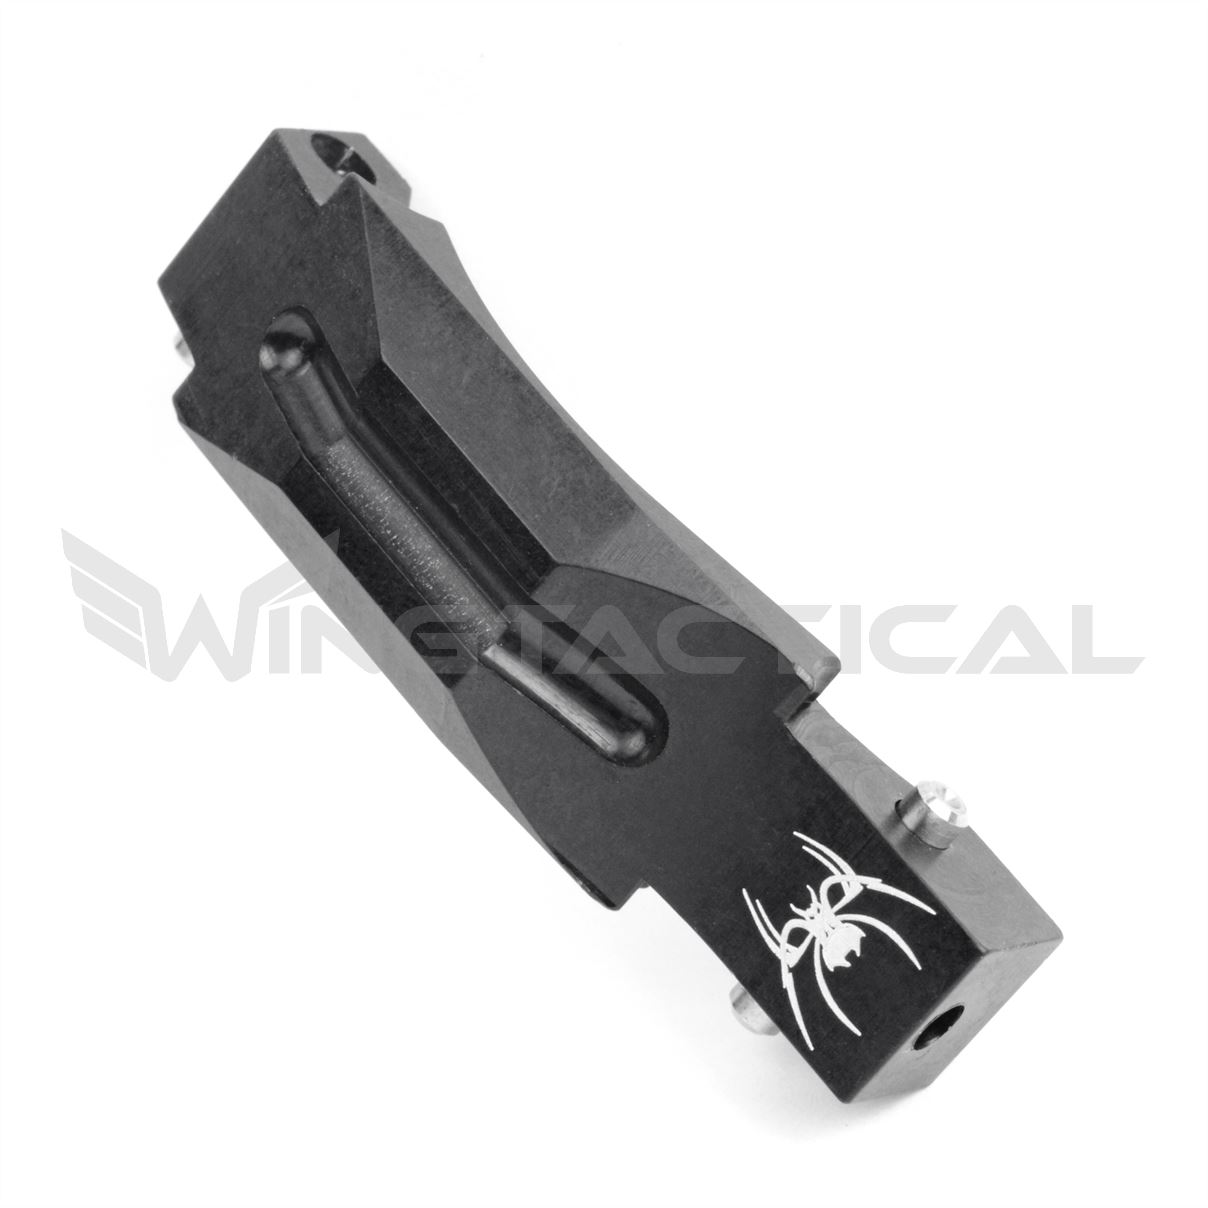 If you aim to build the perfect AR-15, it's important that every last part be made to the highest standards. This is the idea behind the Billet Trigger Guard Gen 2 from Spike's Tactical.